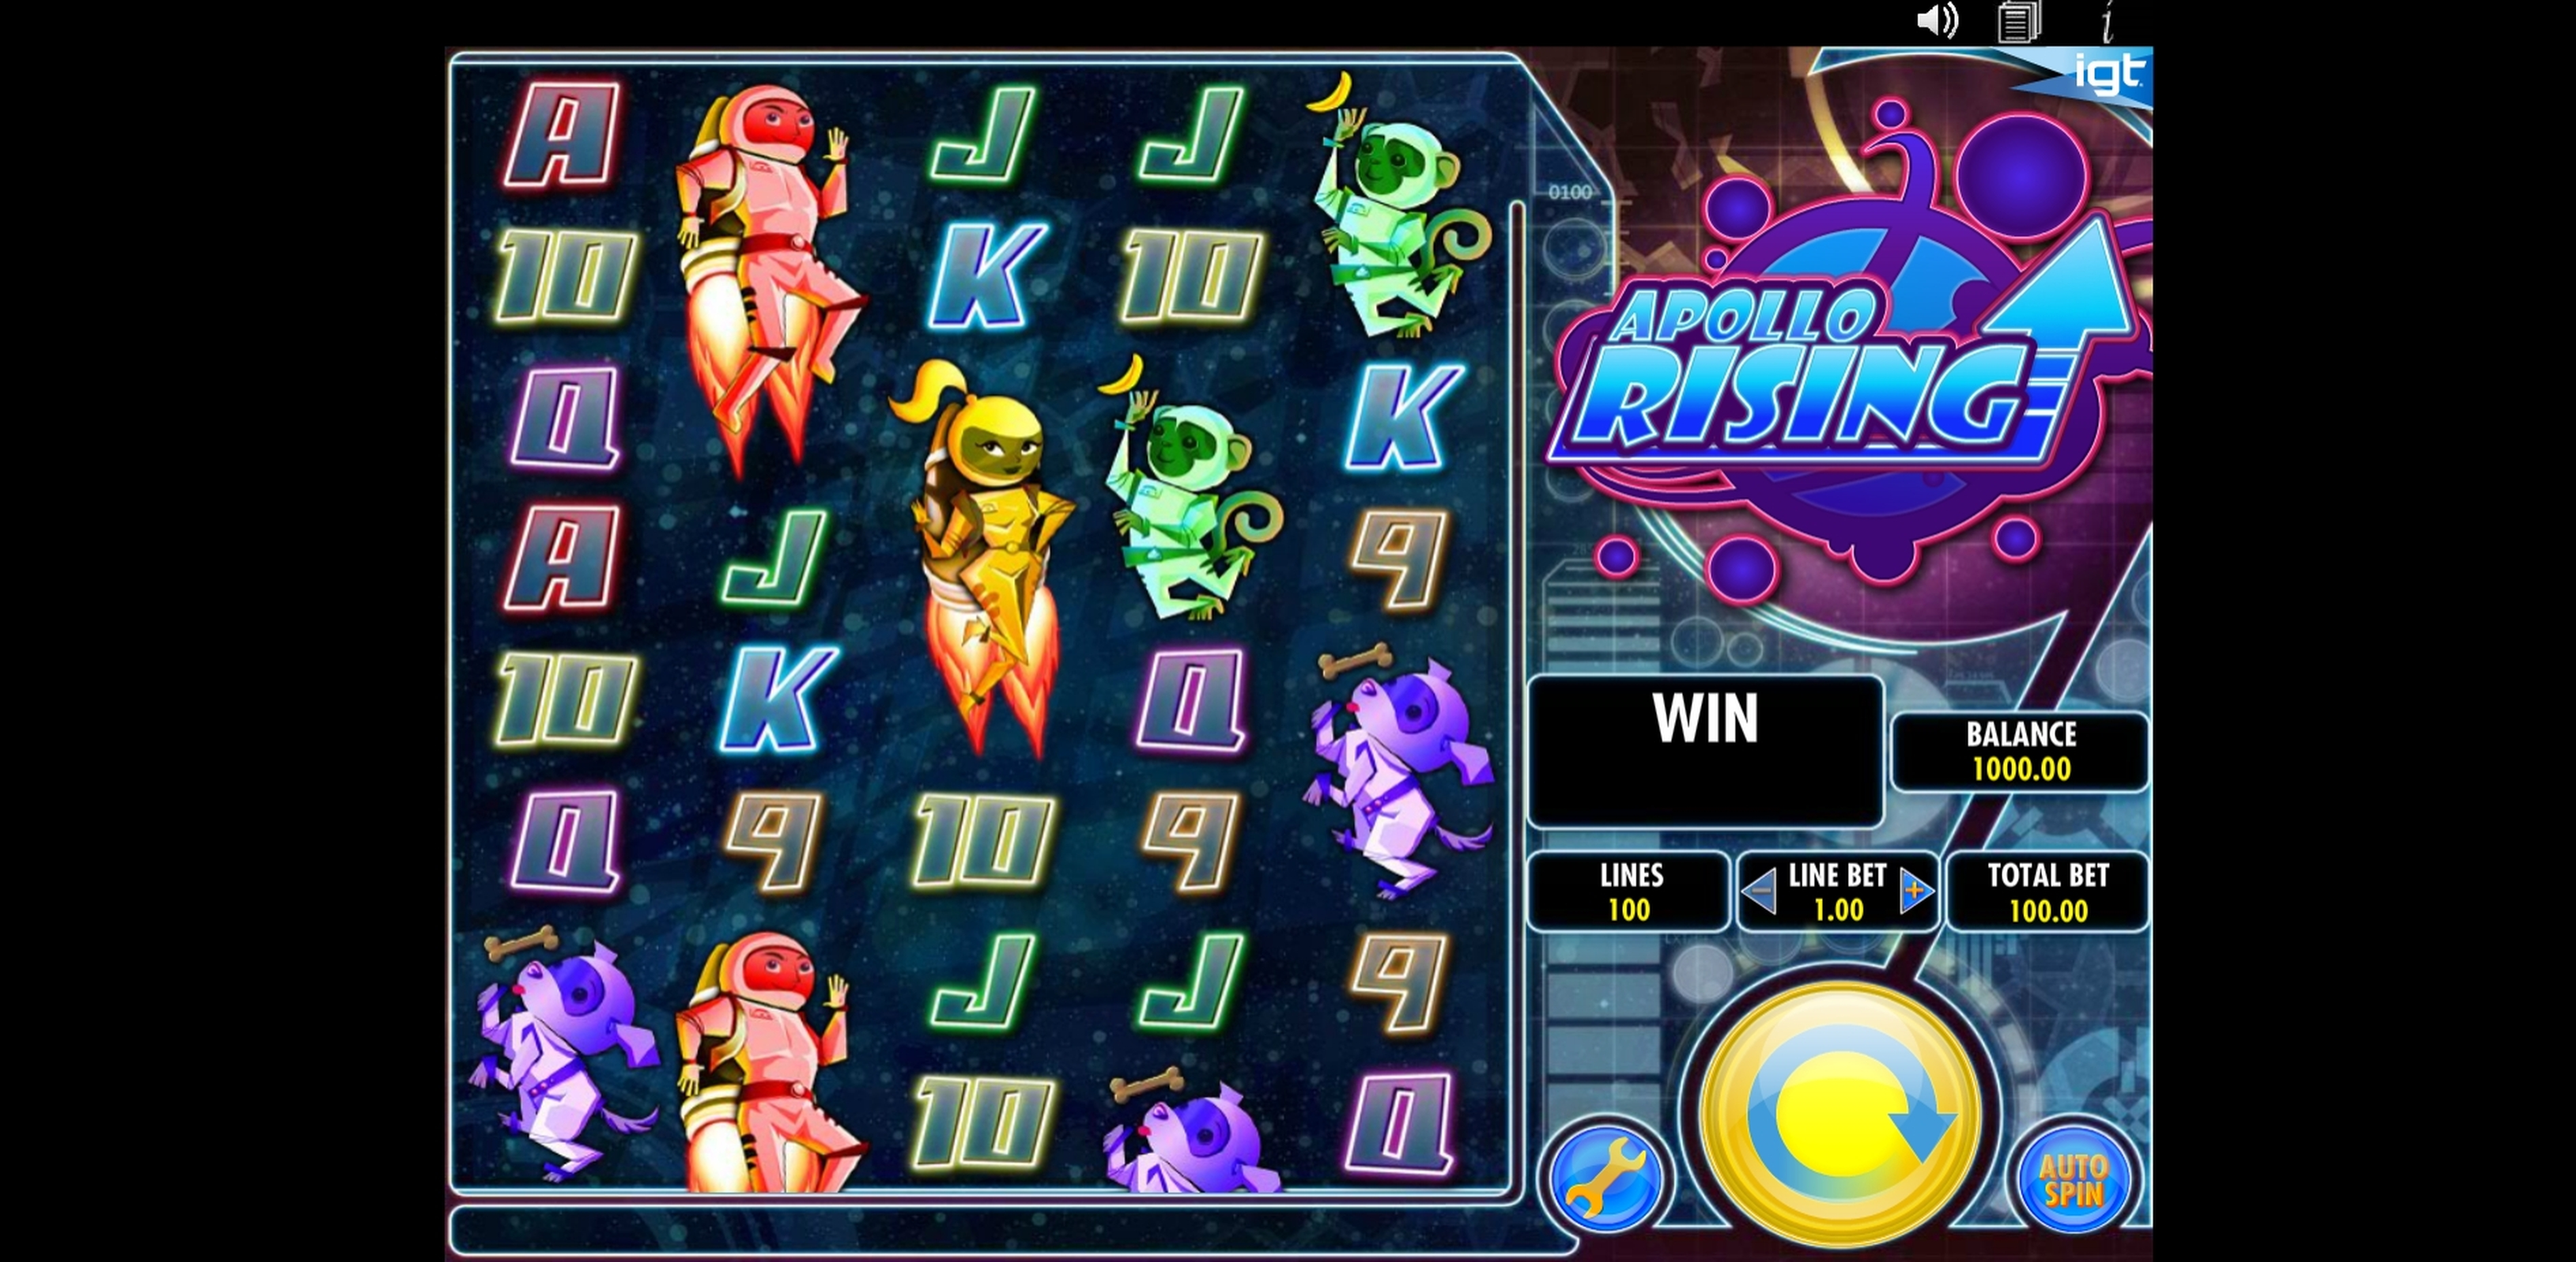 Reels in Apollo Rising Slot Game by IGT